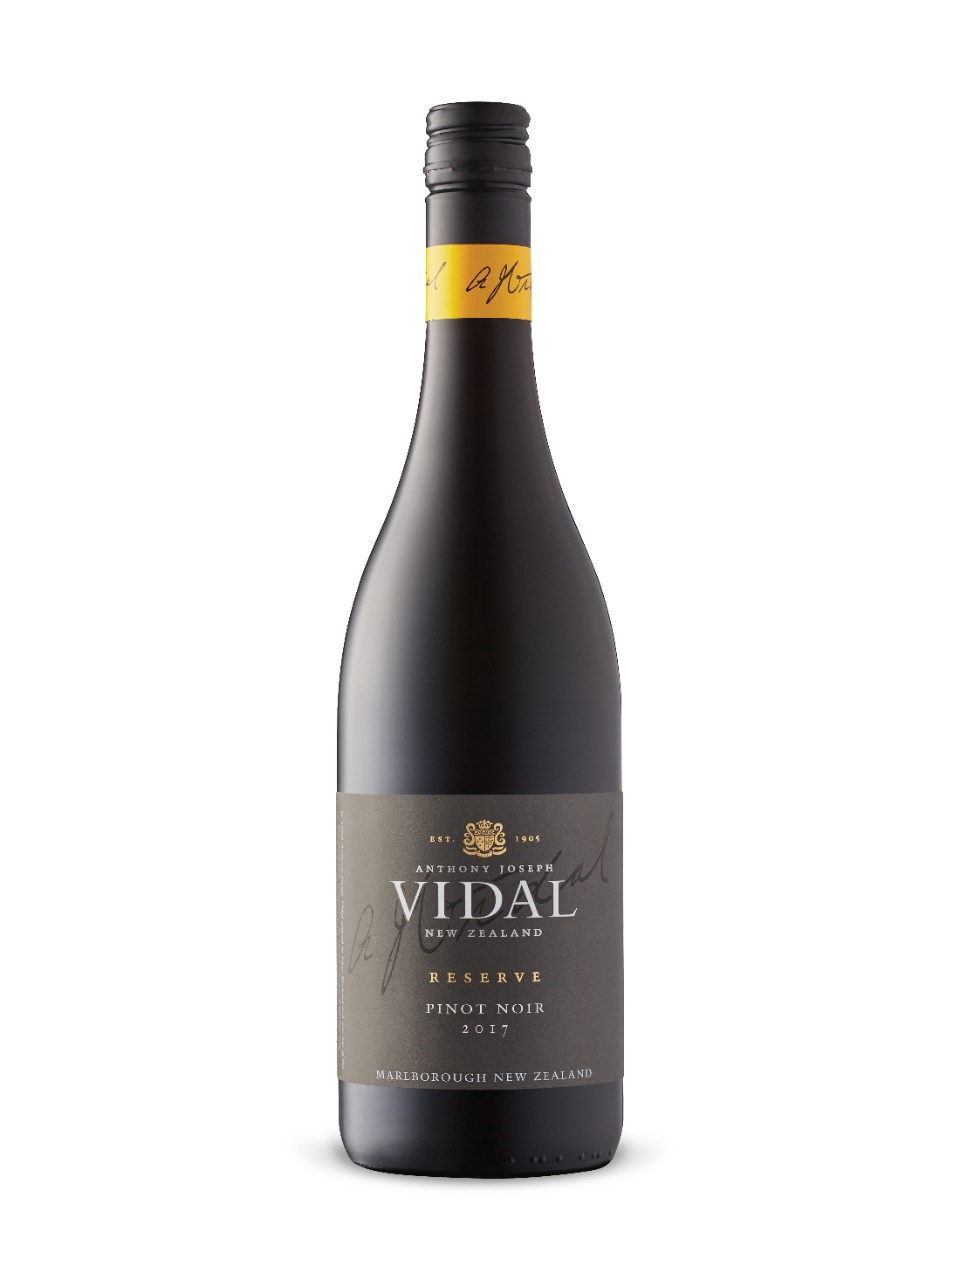 Vidal Reserve Pinot Noir from LCBO